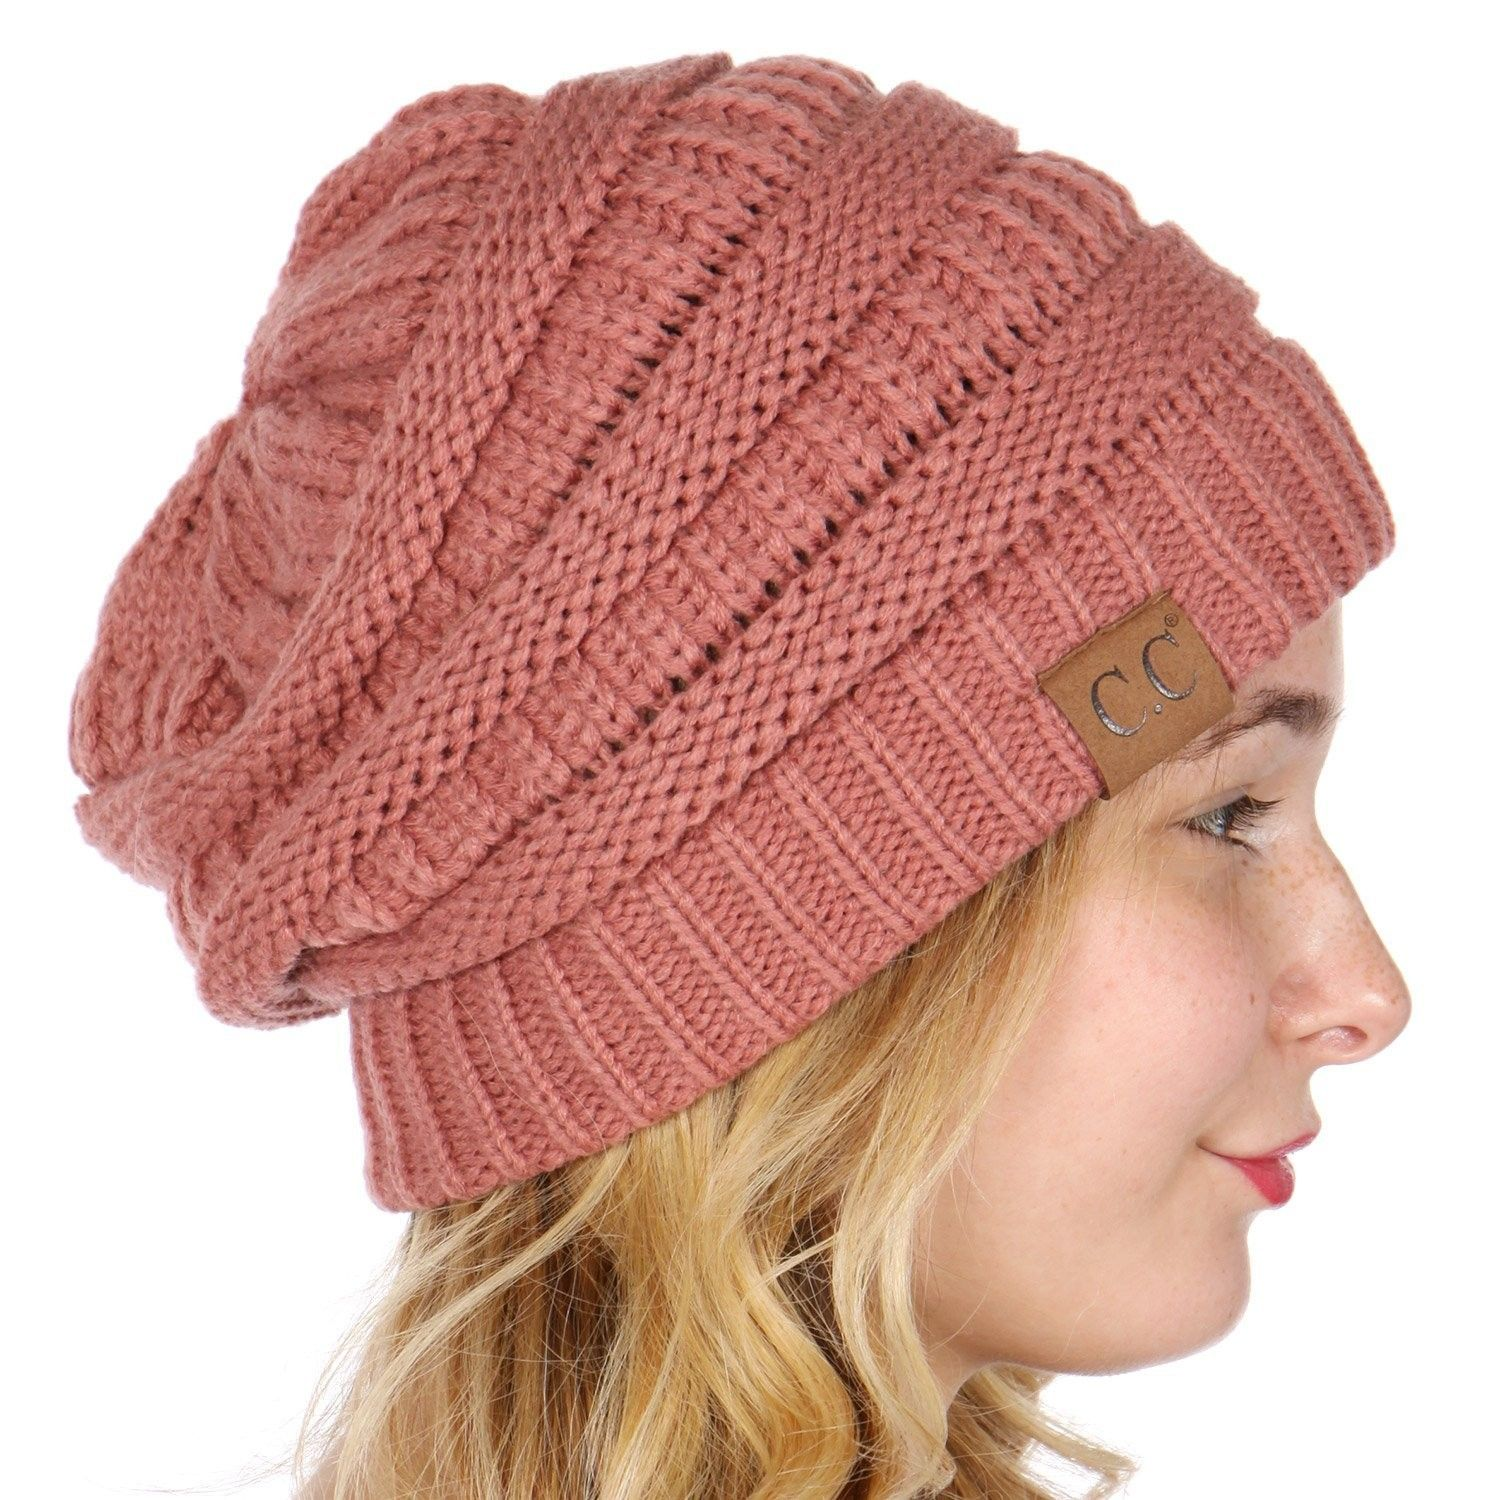 435844cf8ec C.C Unisex Soft Stretch Thick Slouchy Knit Oversized Beanie Cap Hat - Mauve  - CS187C2WCIE - Hats   Caps